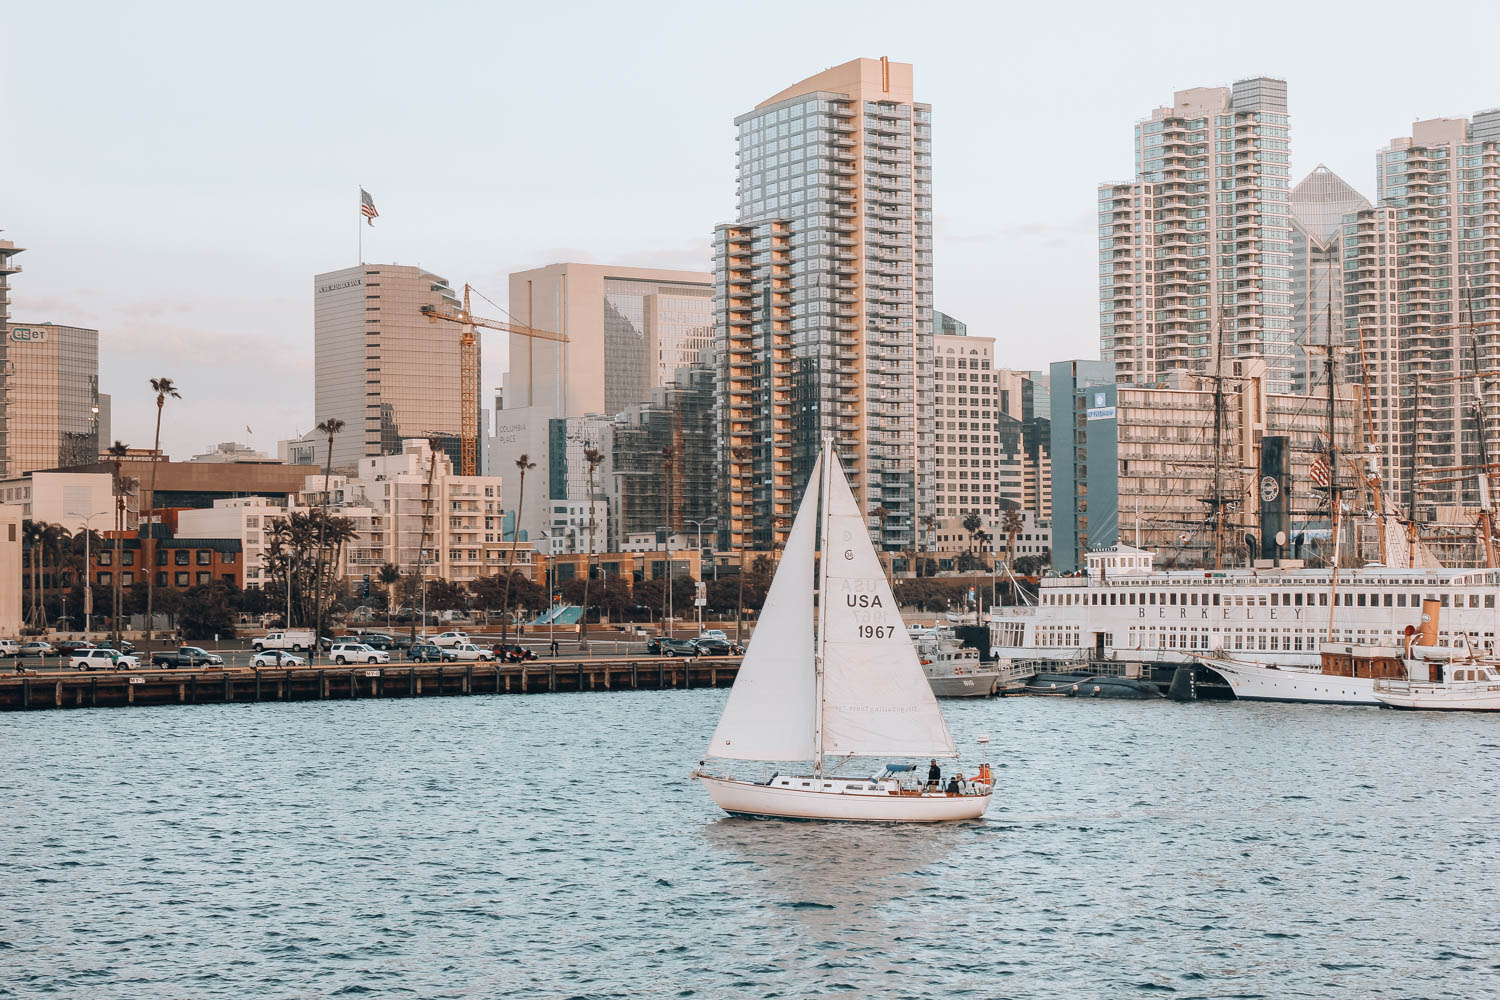 travel-guide-san-diego-recommendations-hornblower-cruise4